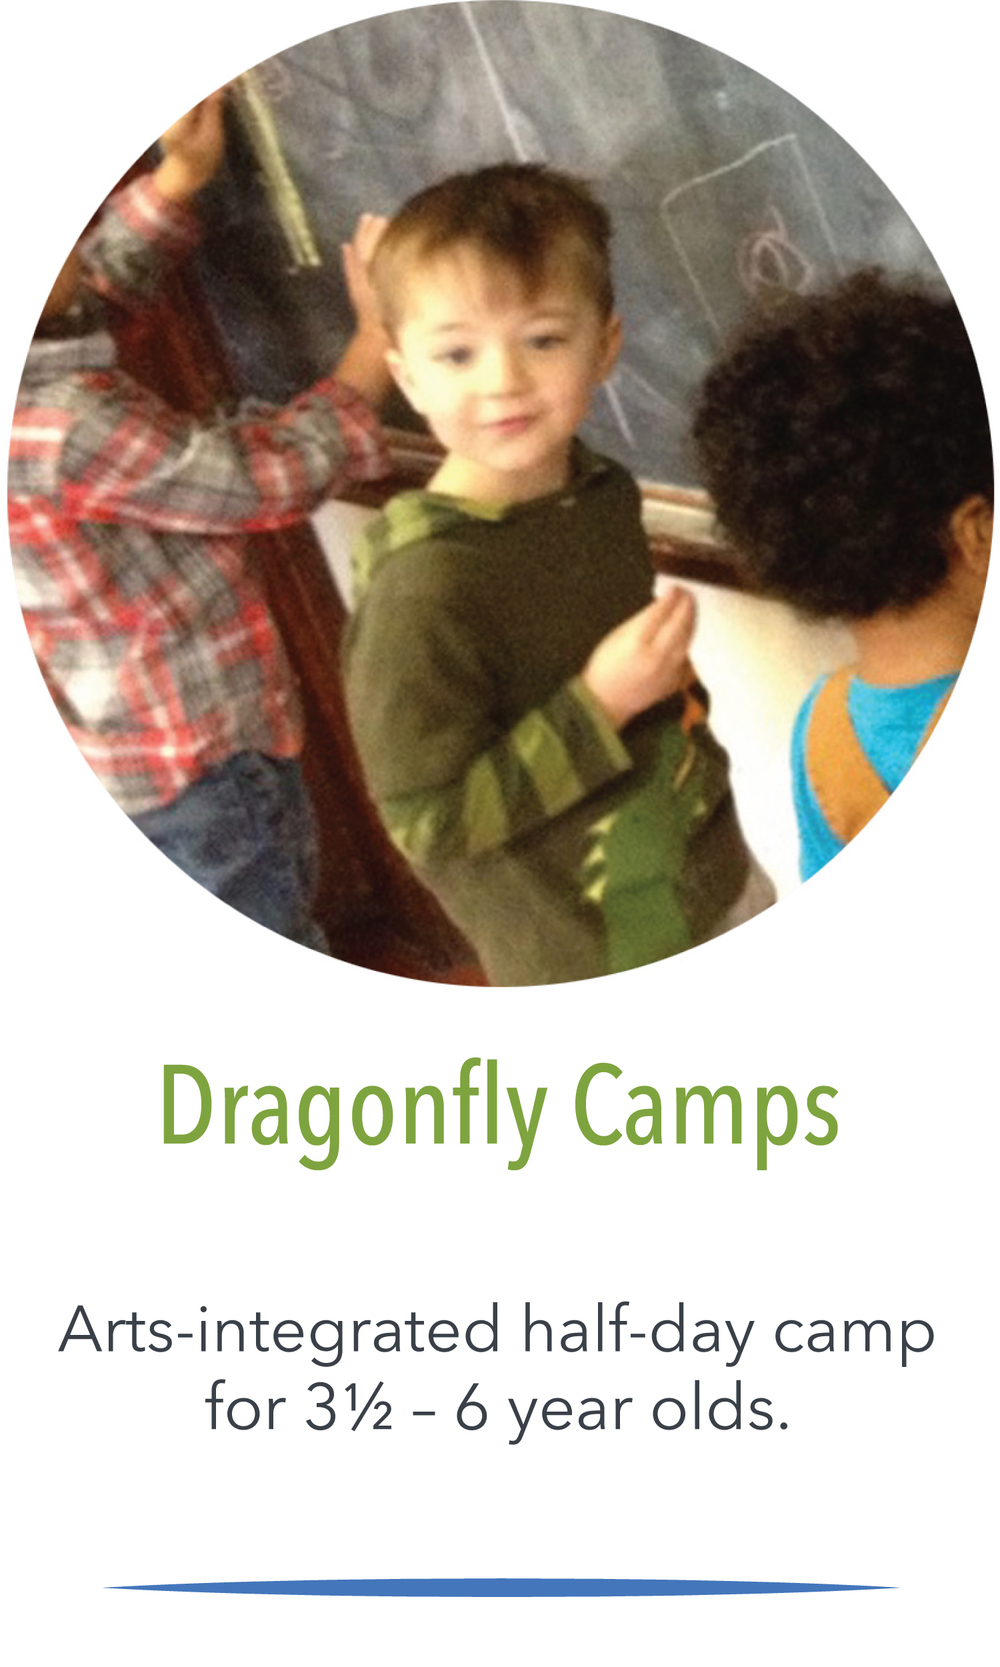 Click here to learn more about Dragonfly Fine Arts Camps.